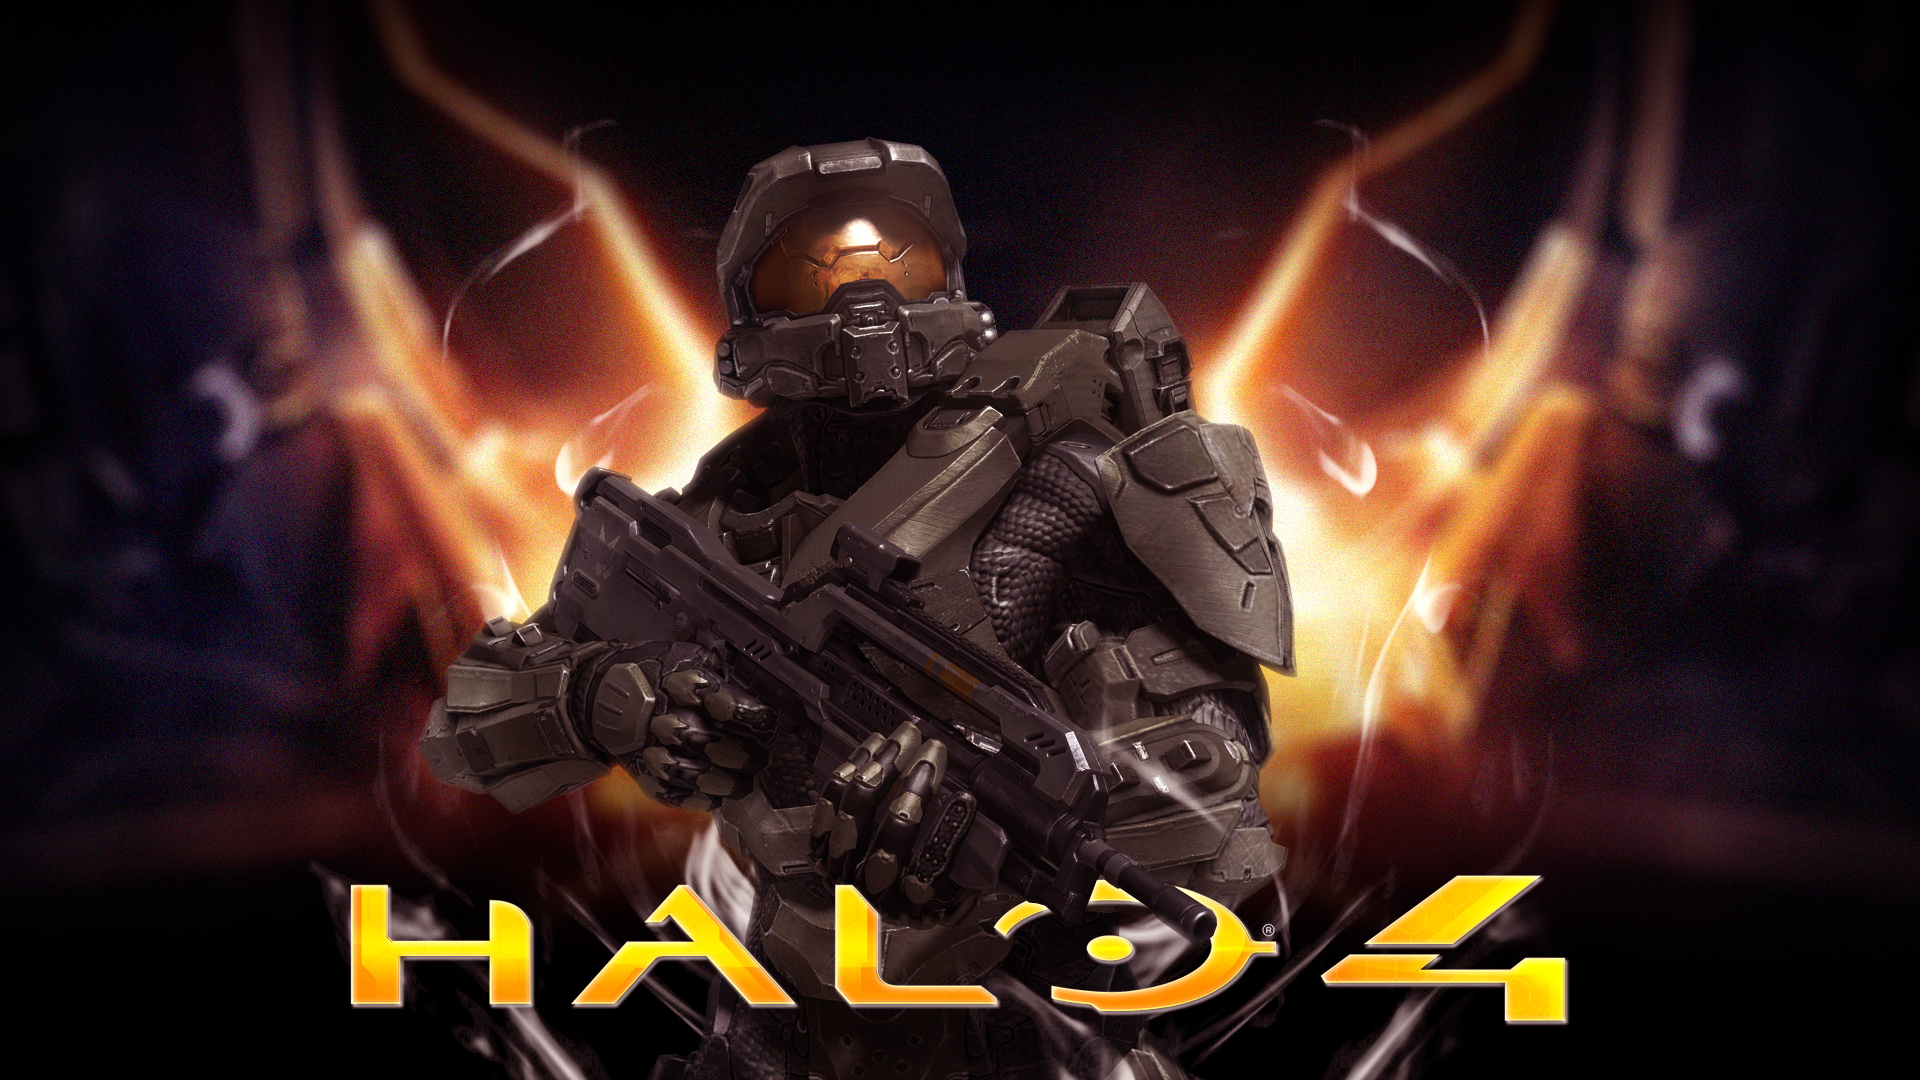 Awesome Halo Wallpapers wallpaper wallpaper hd background desktop 1920x1080